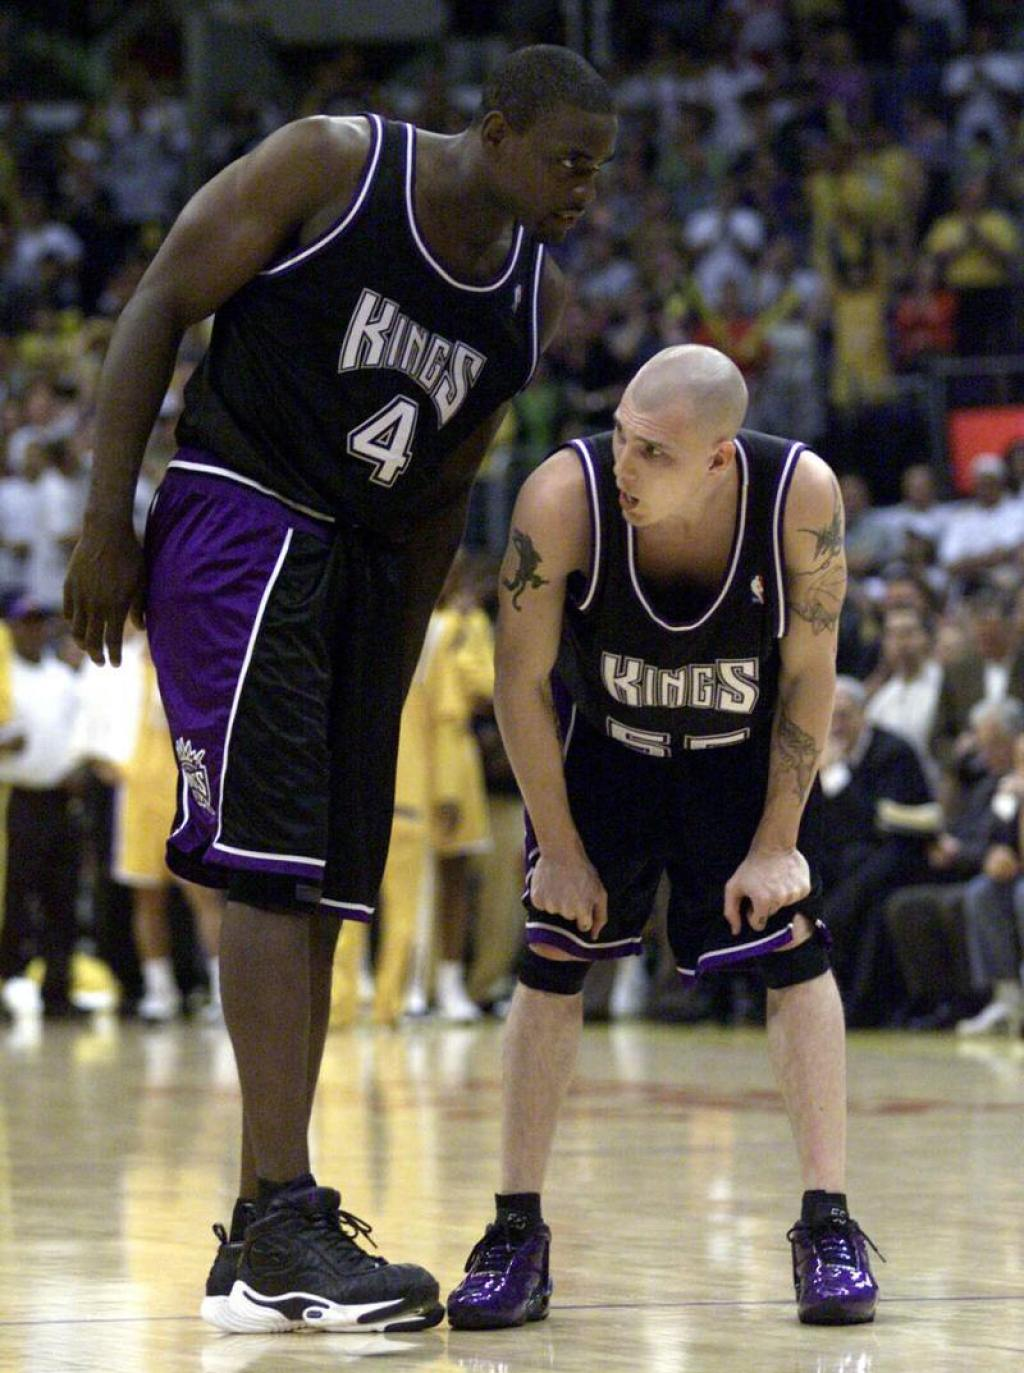 2198e0697a78 Wear your pair of purple Hyperflights and throwback Kings shorts and pass  the ball like JWill. What else do I gotta show ya